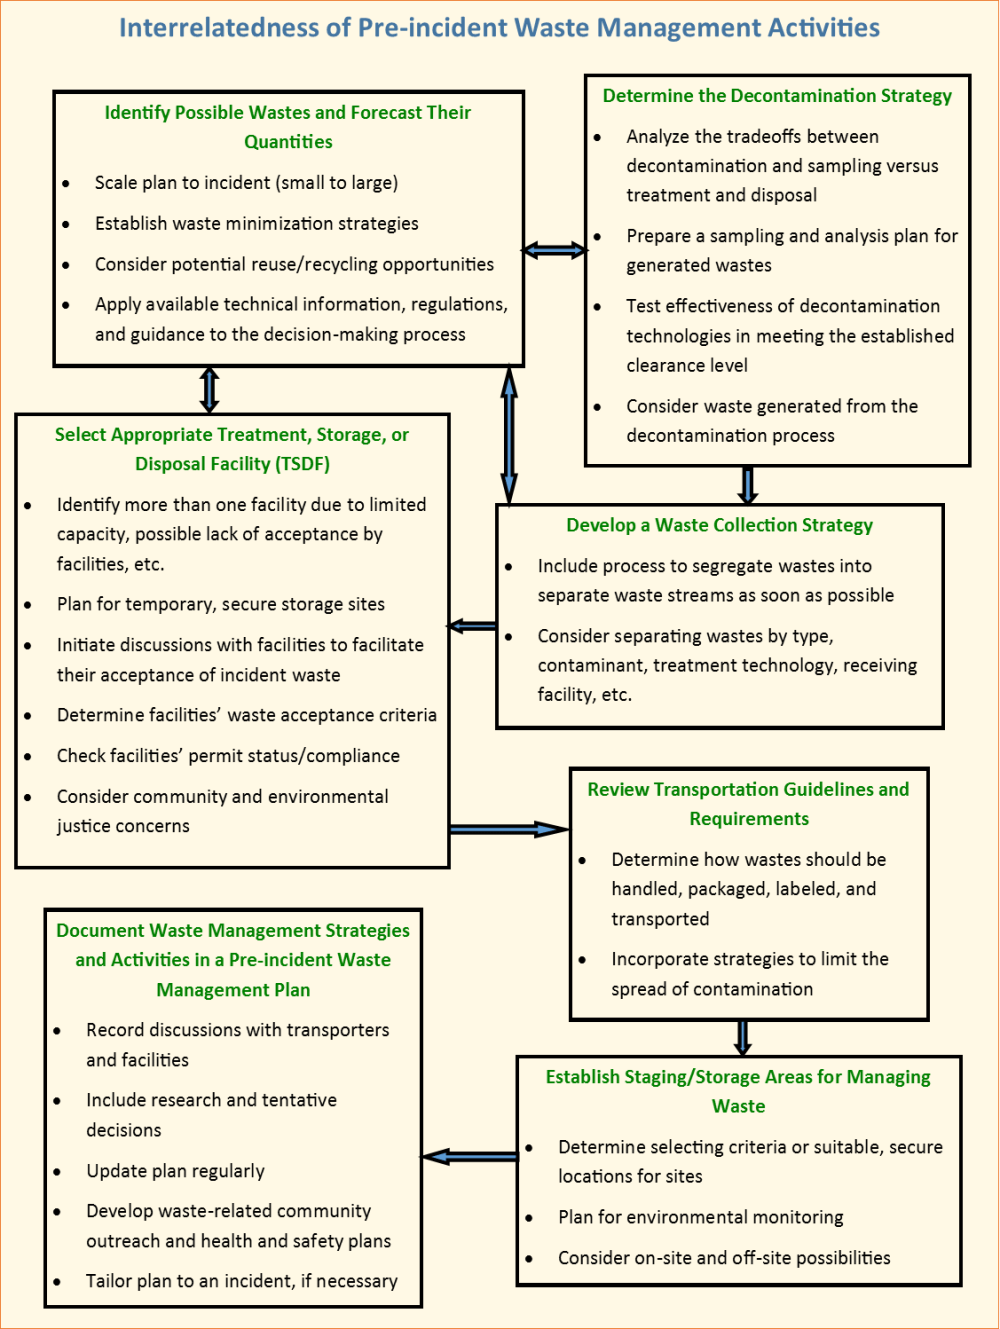 medium resolution of flow chart showing the interrelatedness of pre incident waste management activities